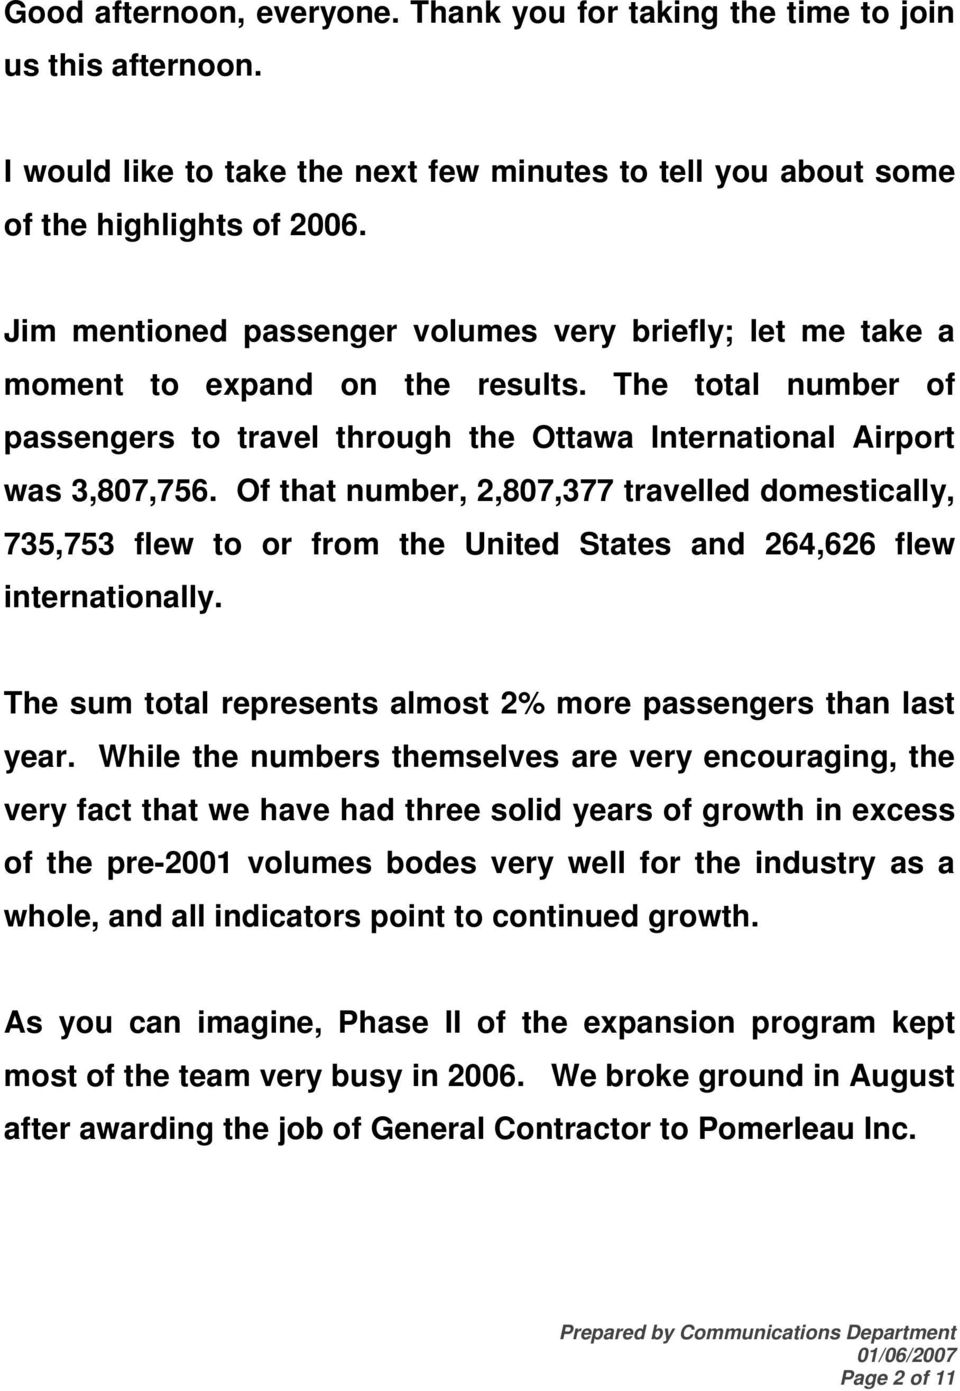 Of that number, 2,807,377 travelled domestically, 735,753 flew to or from the United States and 264,626 flew internationally. The sum total represents almost 2% more passengers than last year.